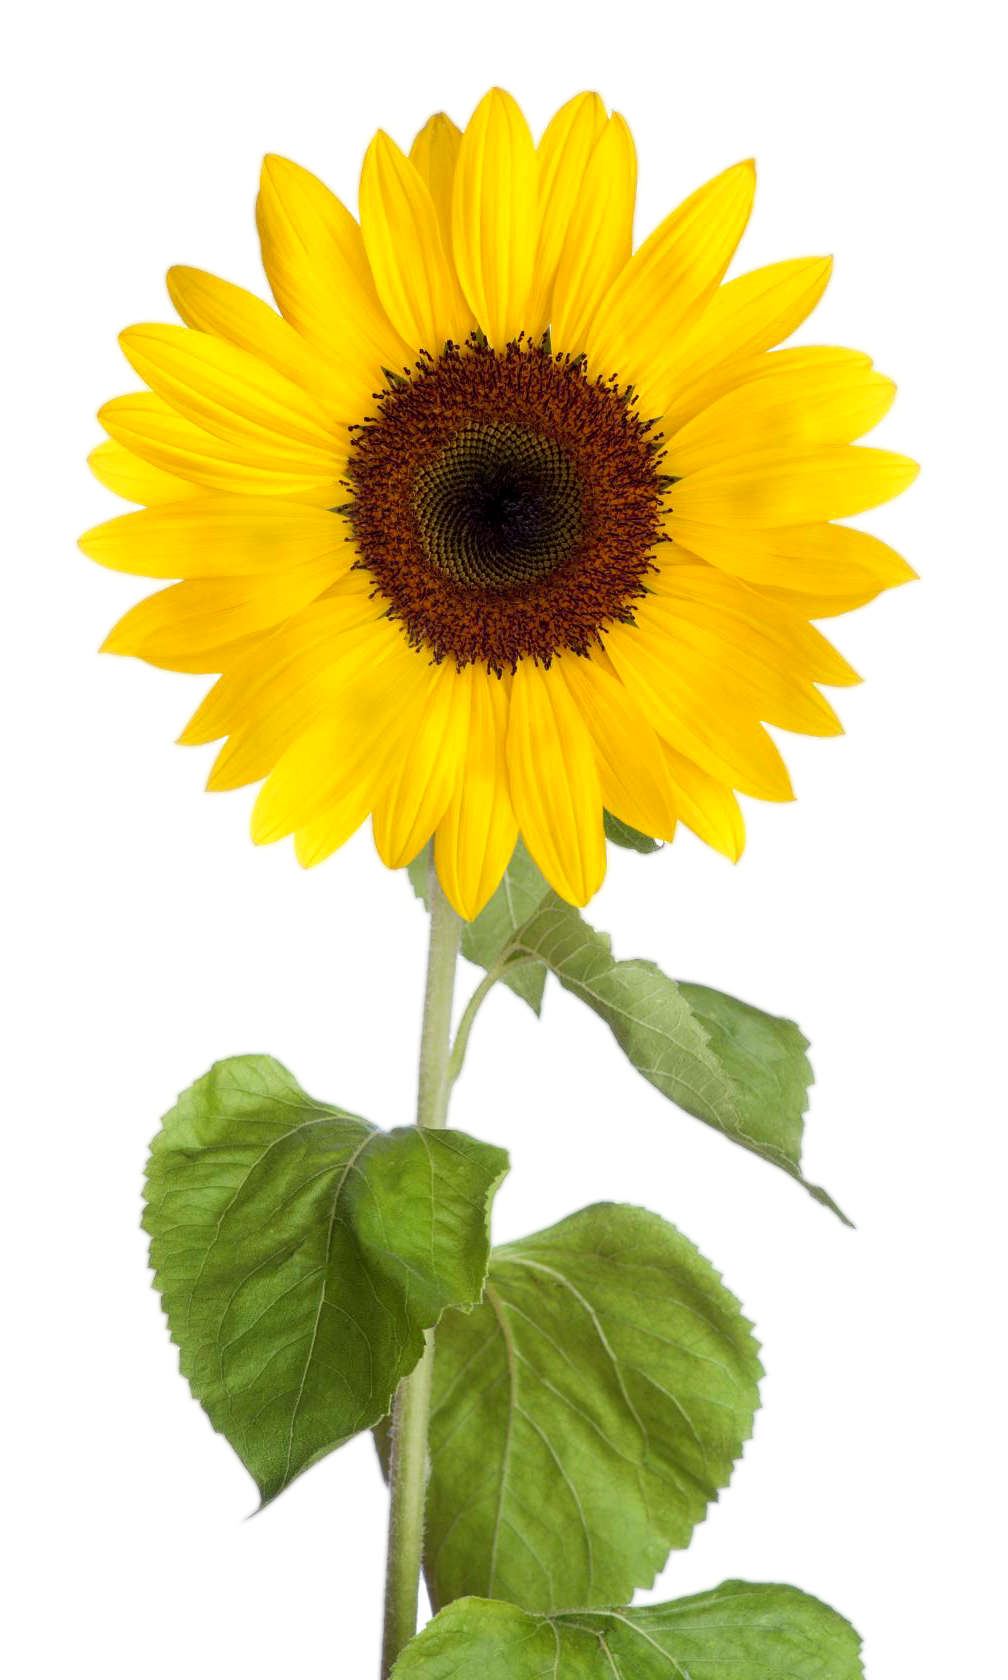 Free download Sunflower clipart images with transparent.